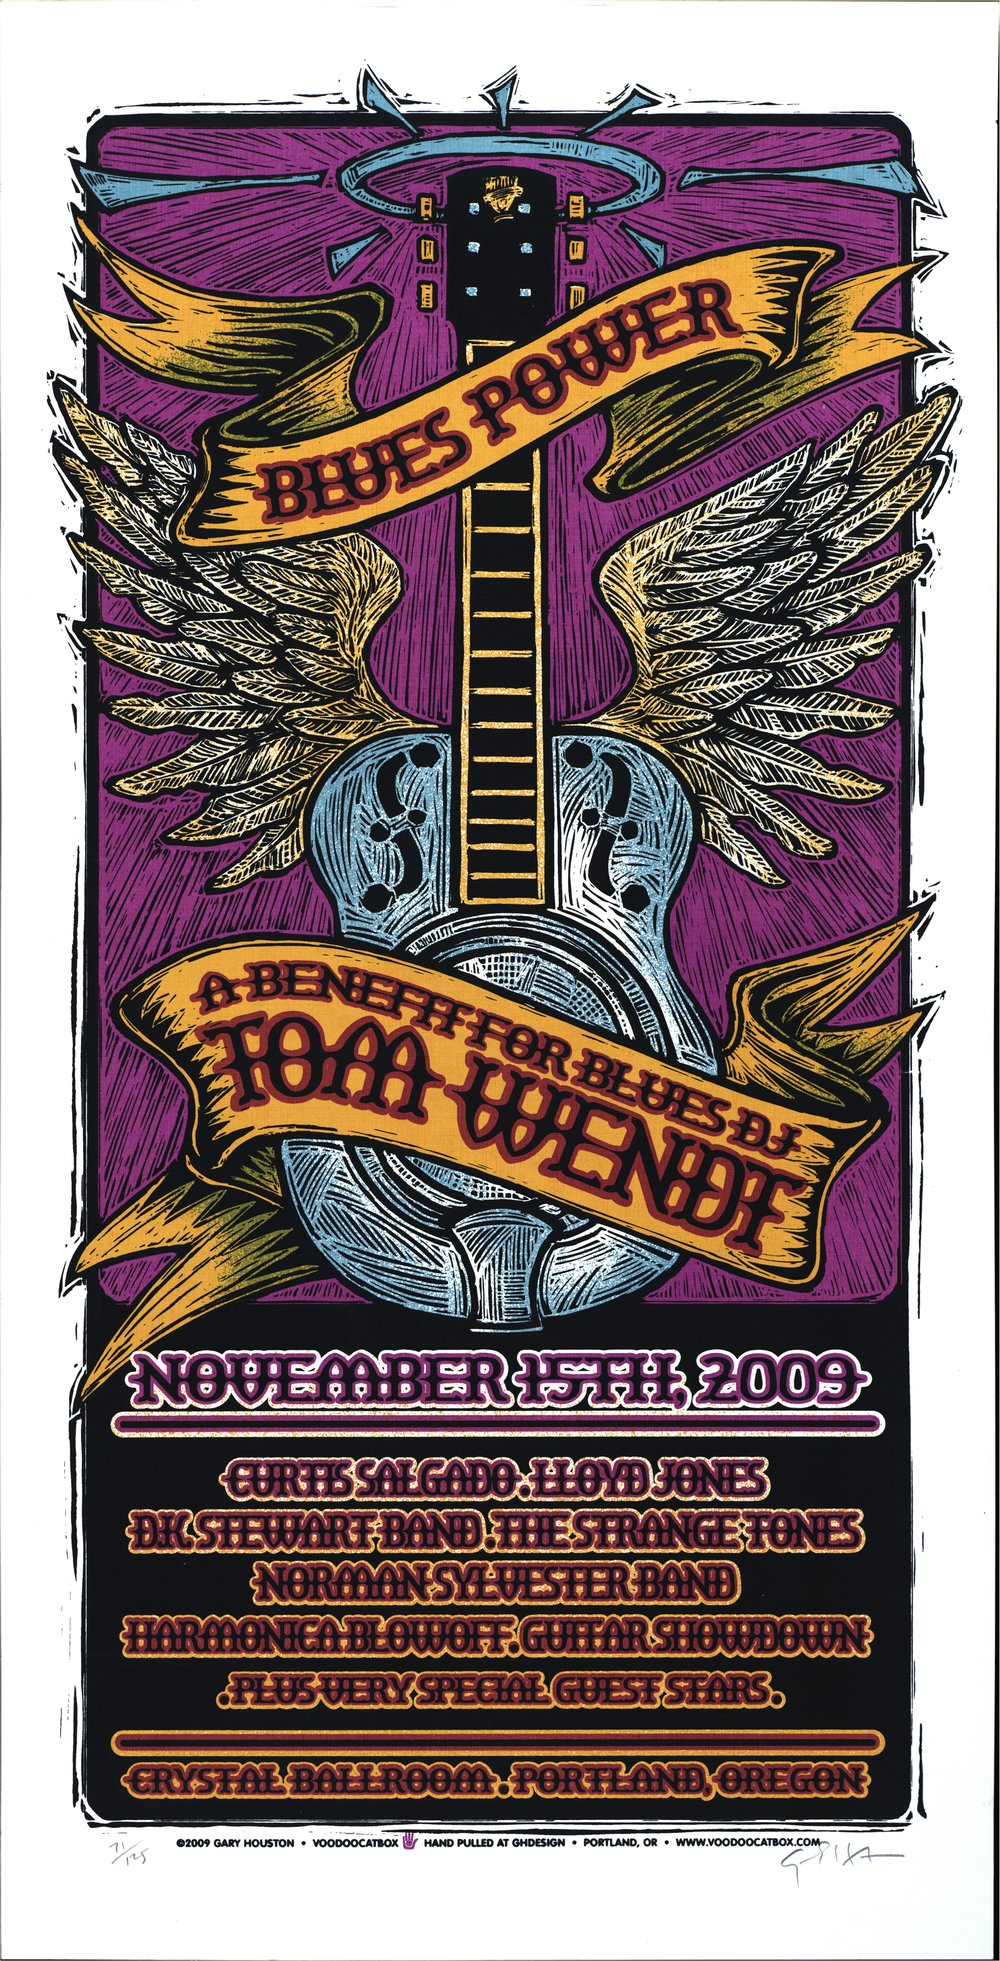 KBOO_Posters_OS_Blues_Benefit_Tom_Wendt_2009.jpg